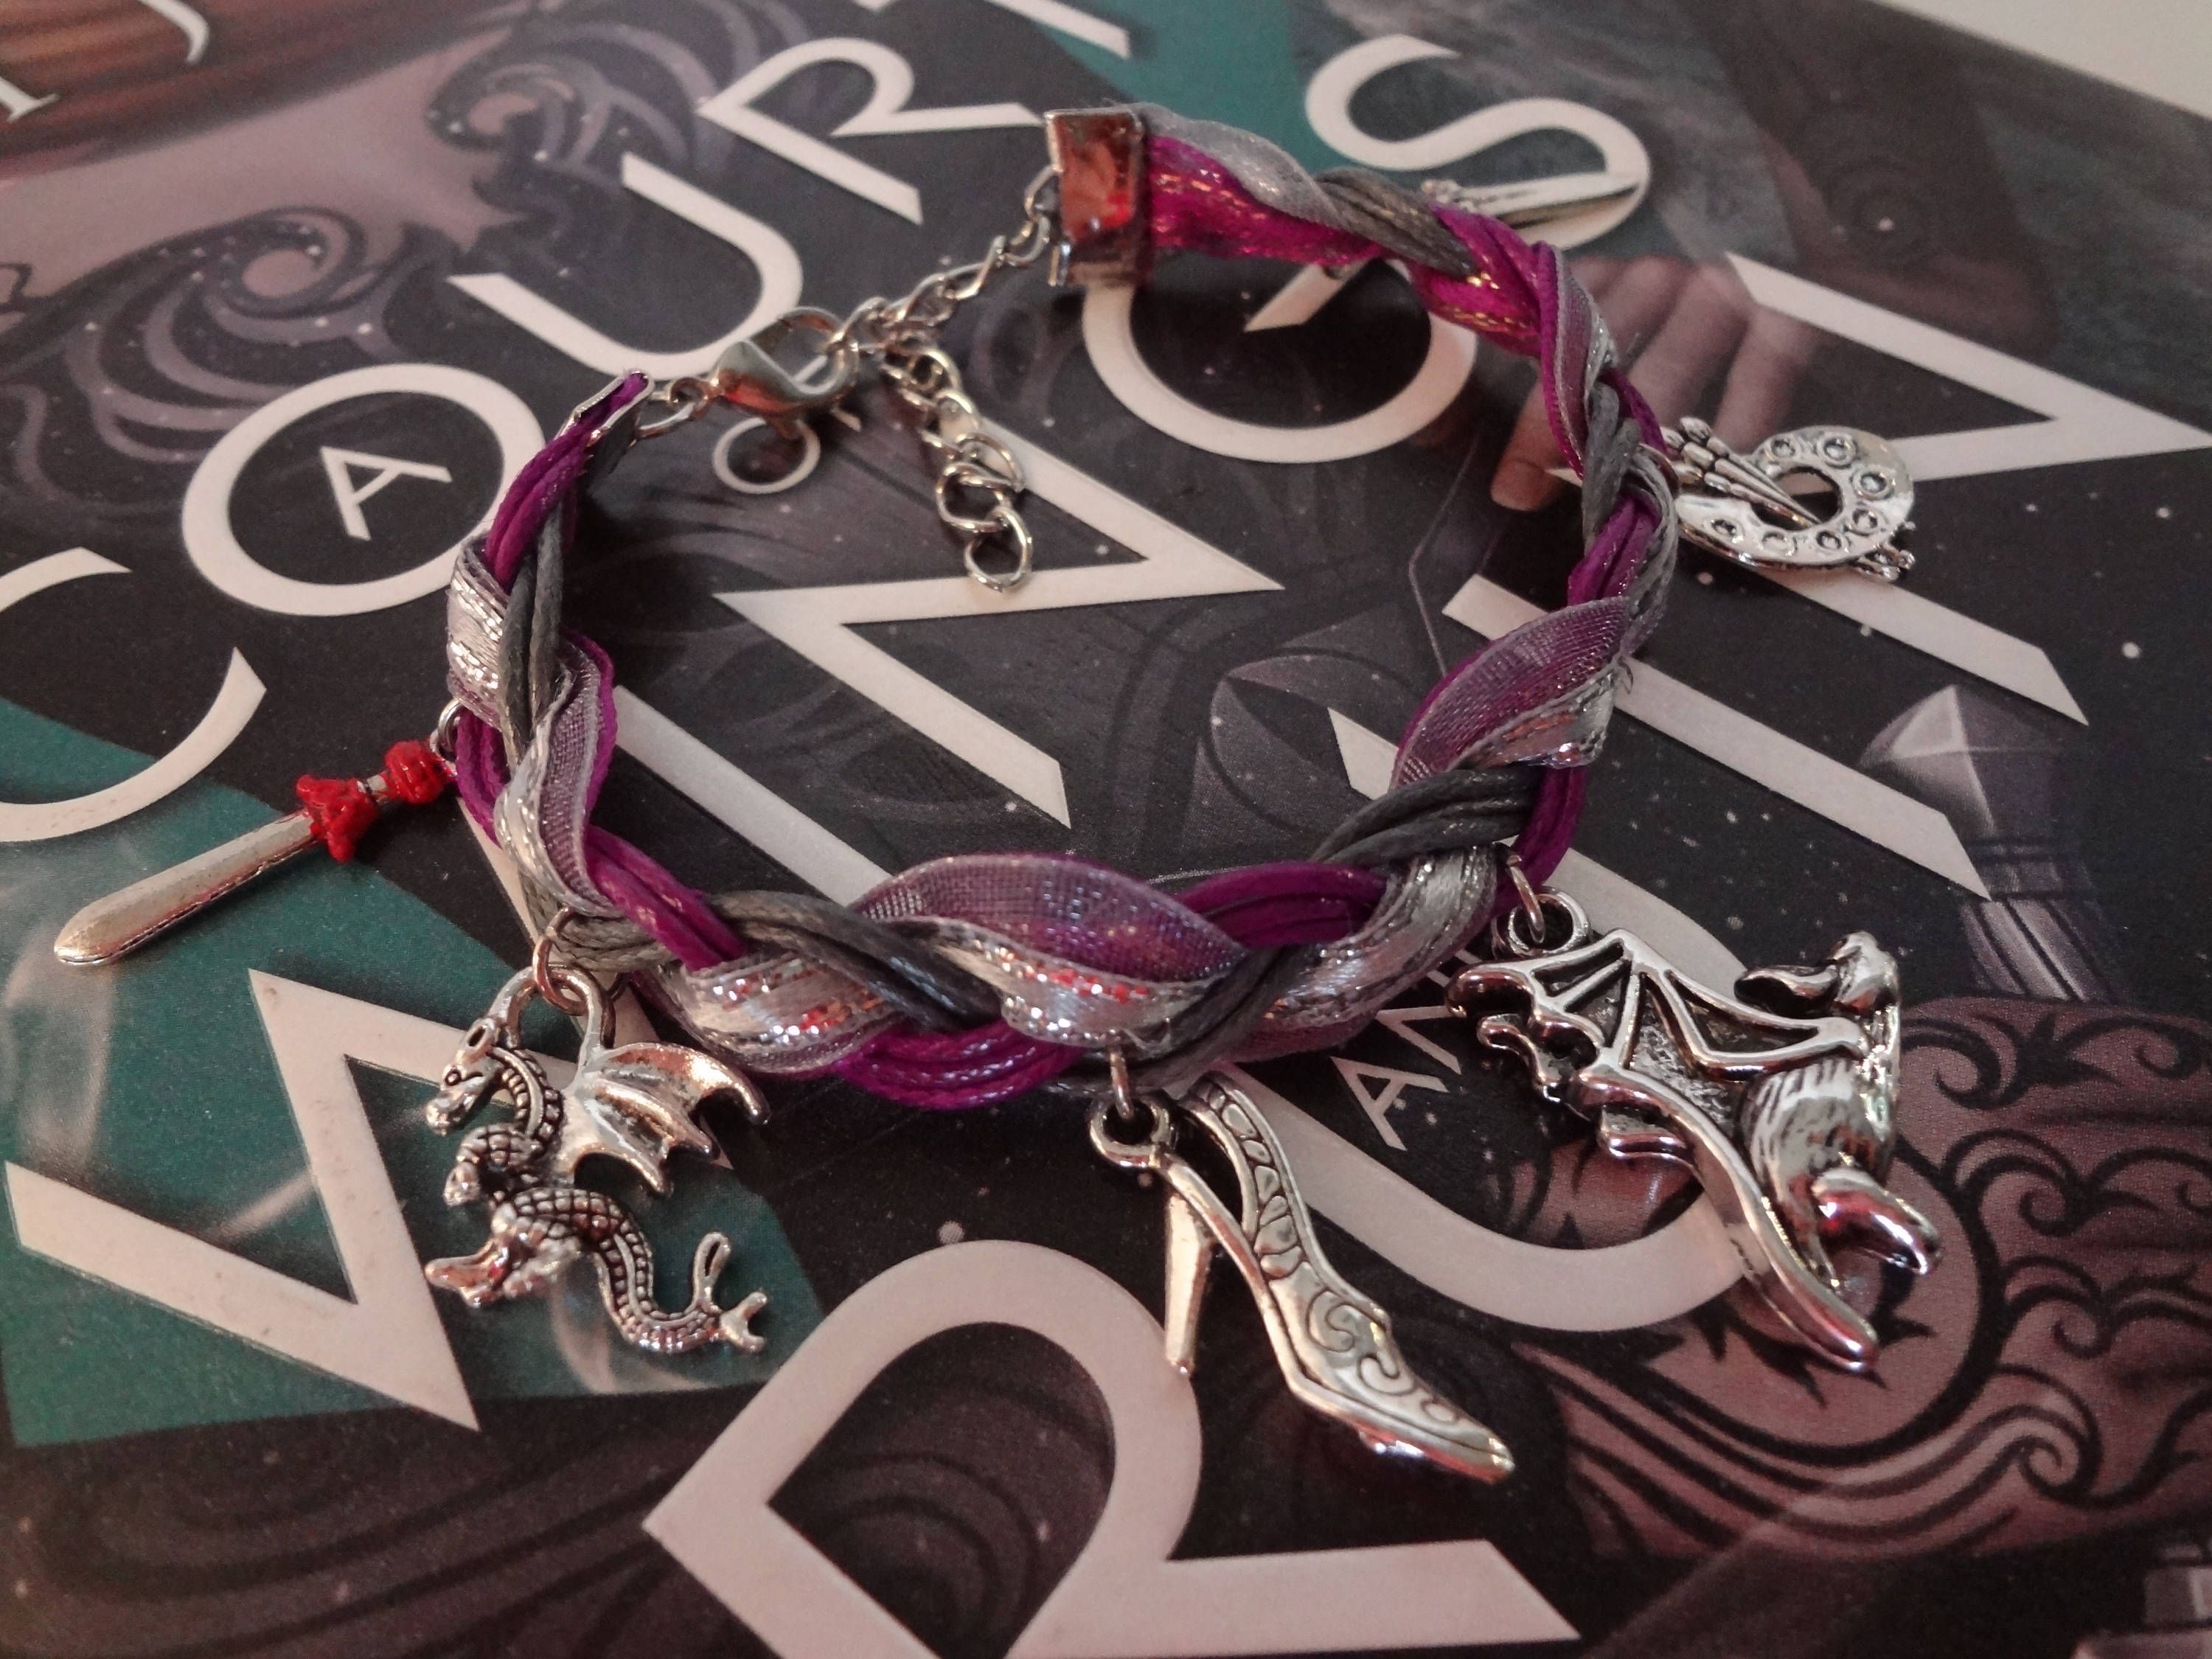 A Court of Thorns and Roses Inspired Braided Charm Bracelet, Court of Dreams Edition by TheWorldOfFandom on Etsy